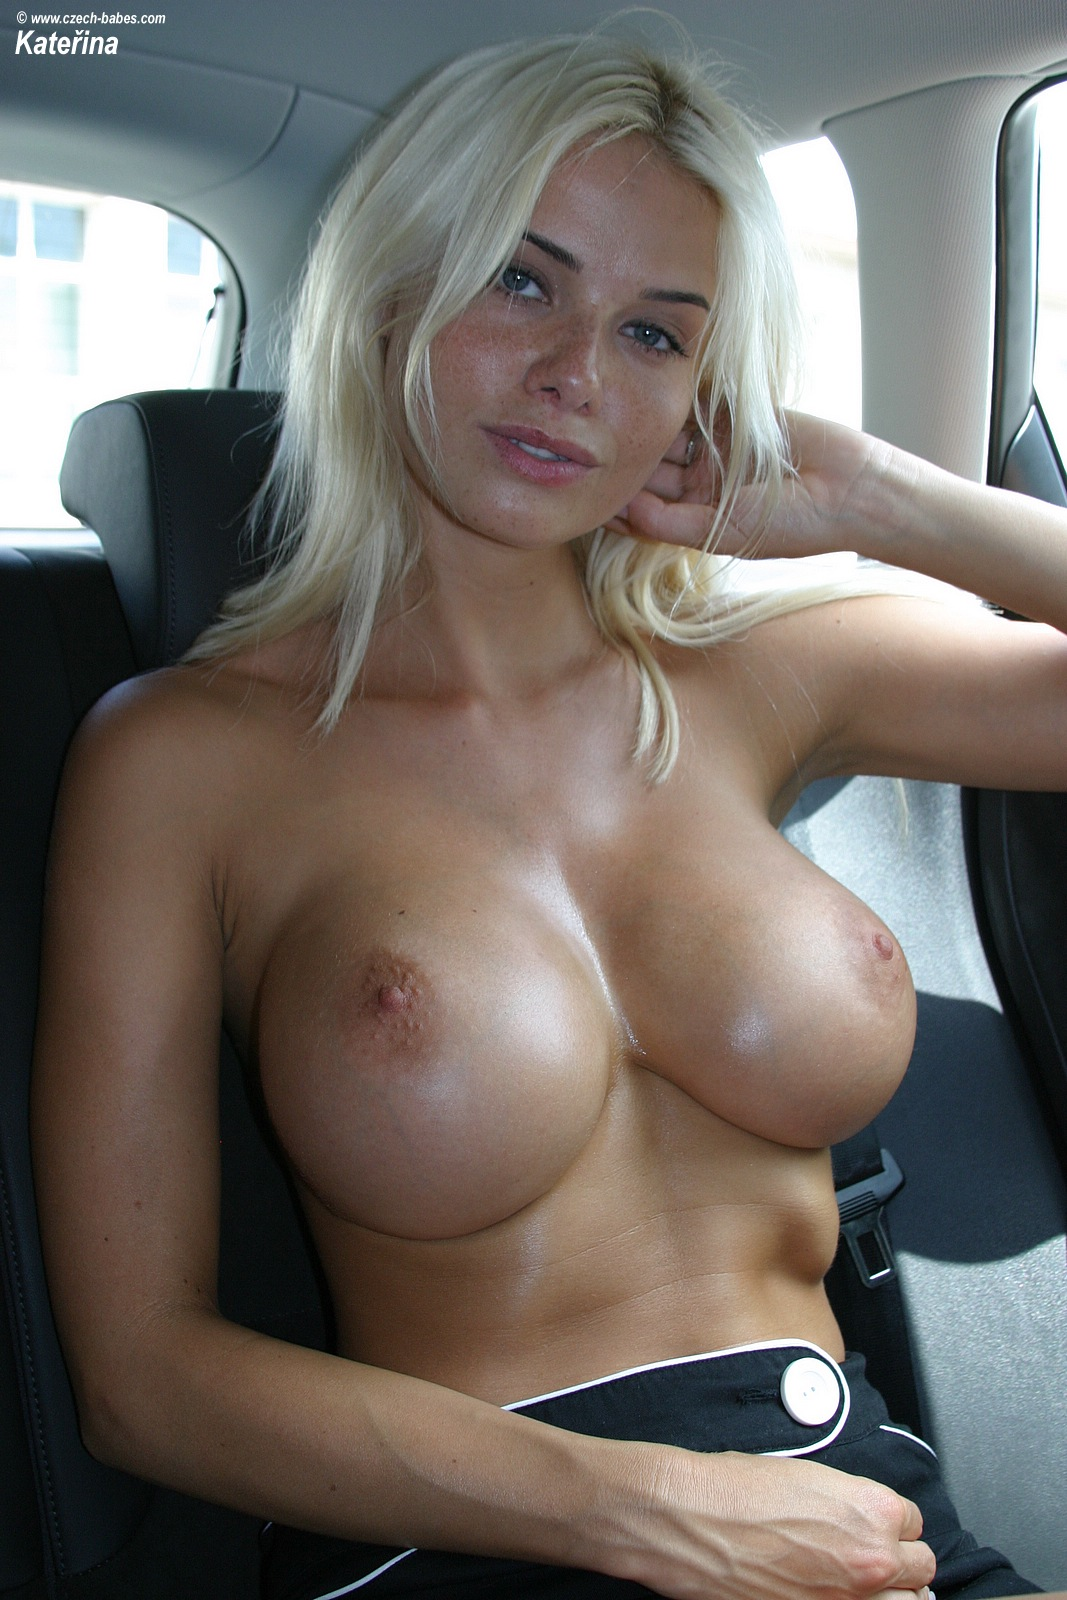 katerina-boobs-car-nude-czech-babes-09